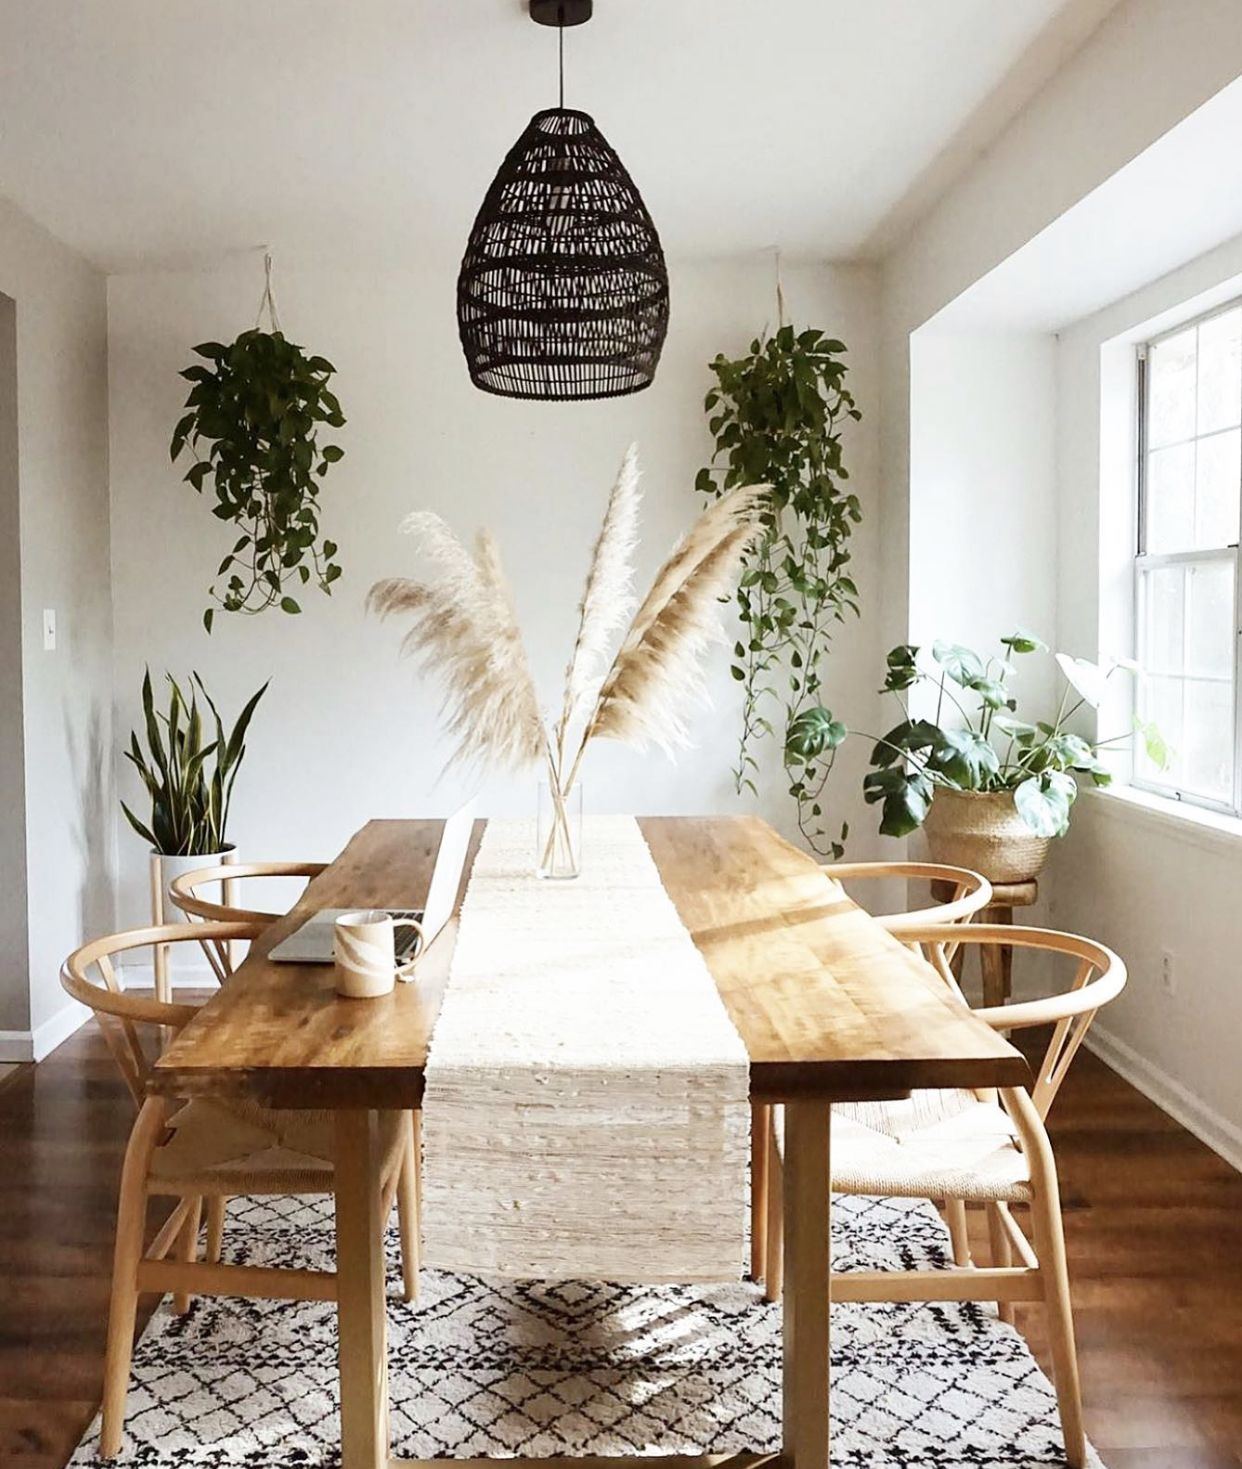 Pin by Laurence Al on For the Home in 17  Dining room table